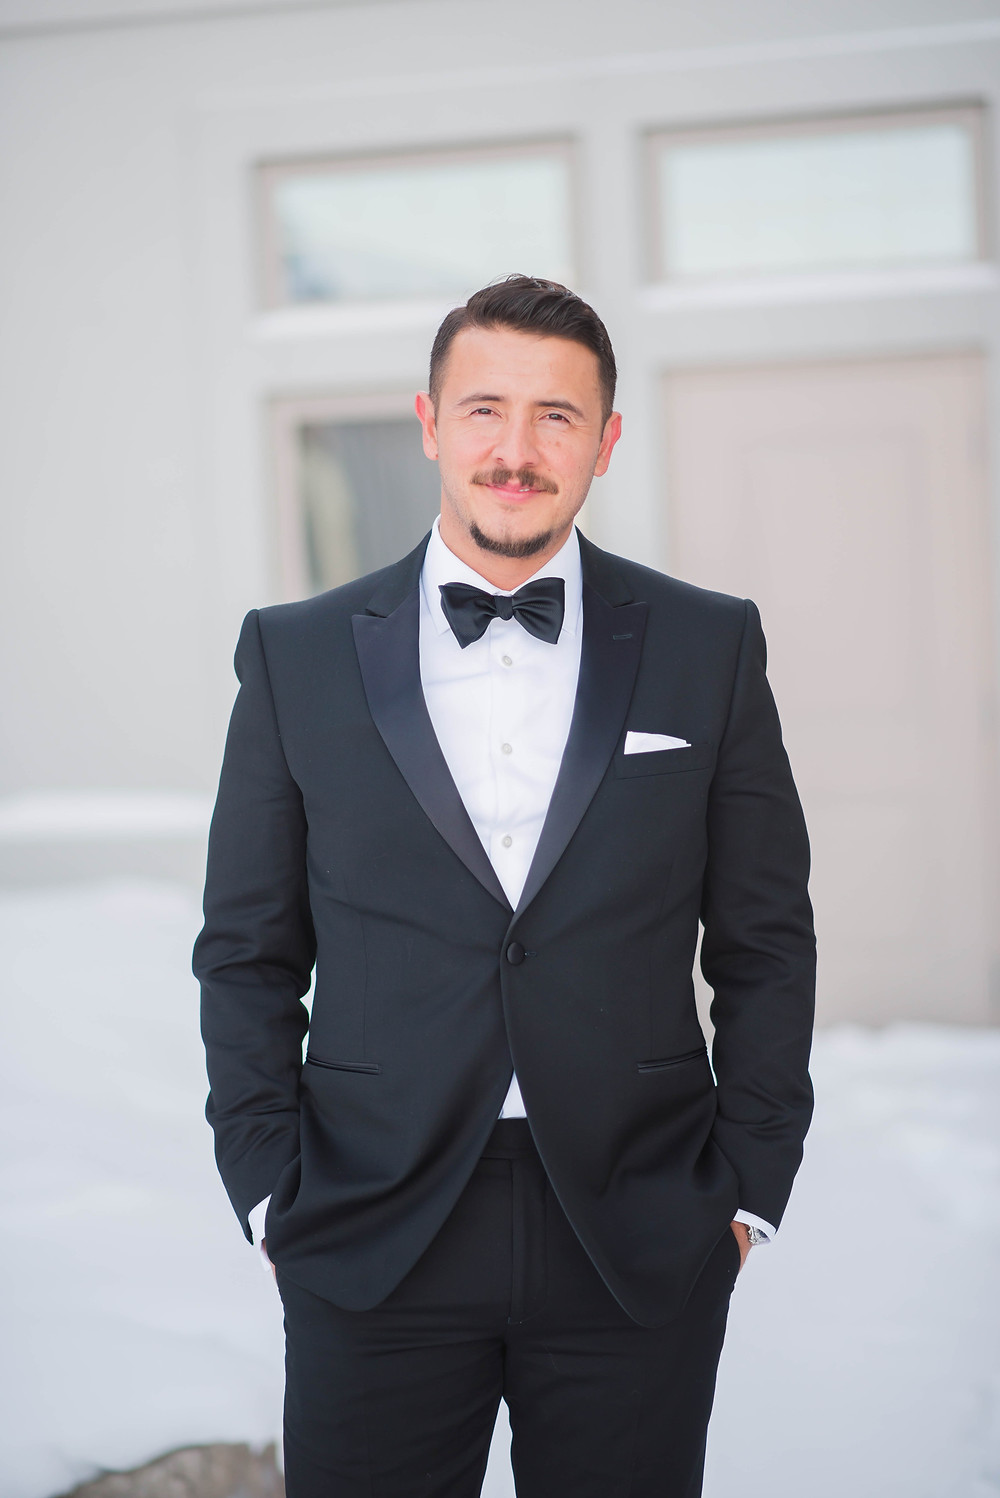 classic groom suit and bowtie